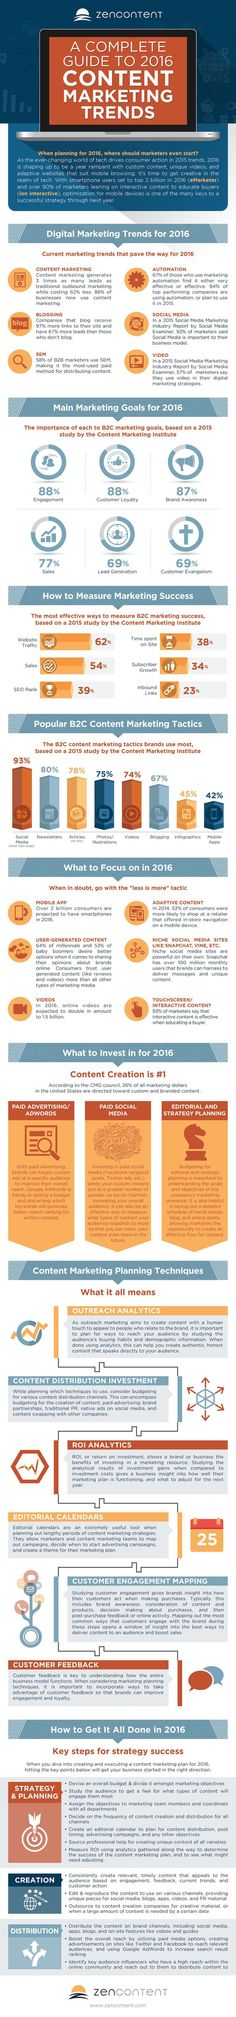 A Complete Guide To 2016 Content Marketing Trends New infographic reveals content marketing budgets benchmarks and the key trends for 2016 Inbound Marketing, Marketing Trends, Marketing Direct, Marketing Budget, Content Marketing Strategy, Mobile Marketing, Marketing Digital, Internet Marketing, Social Media Marketing